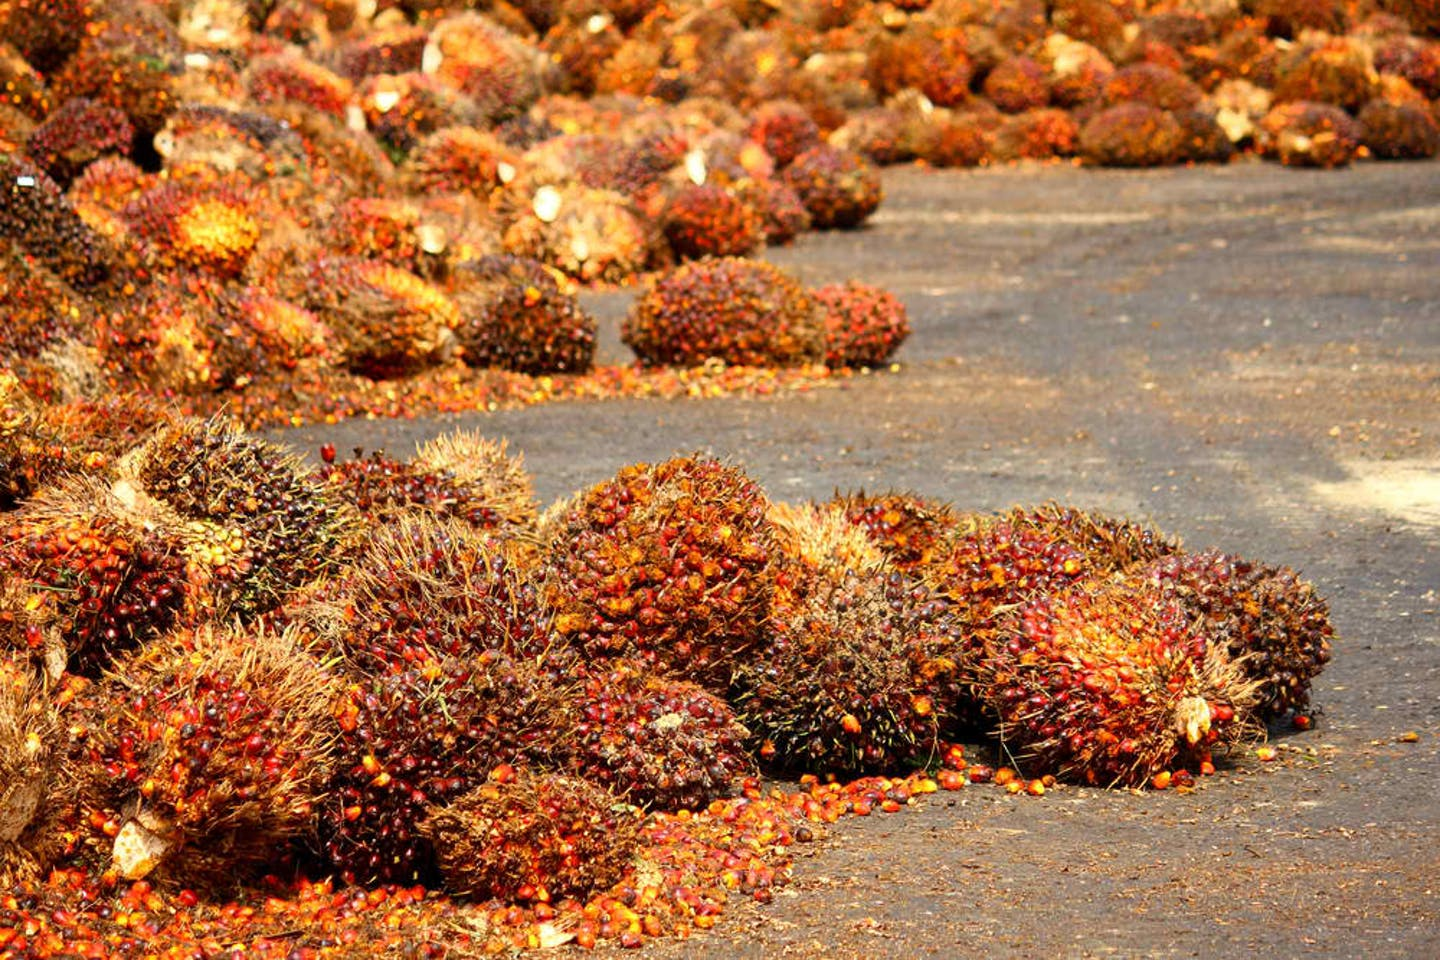 palm oil fruits spread